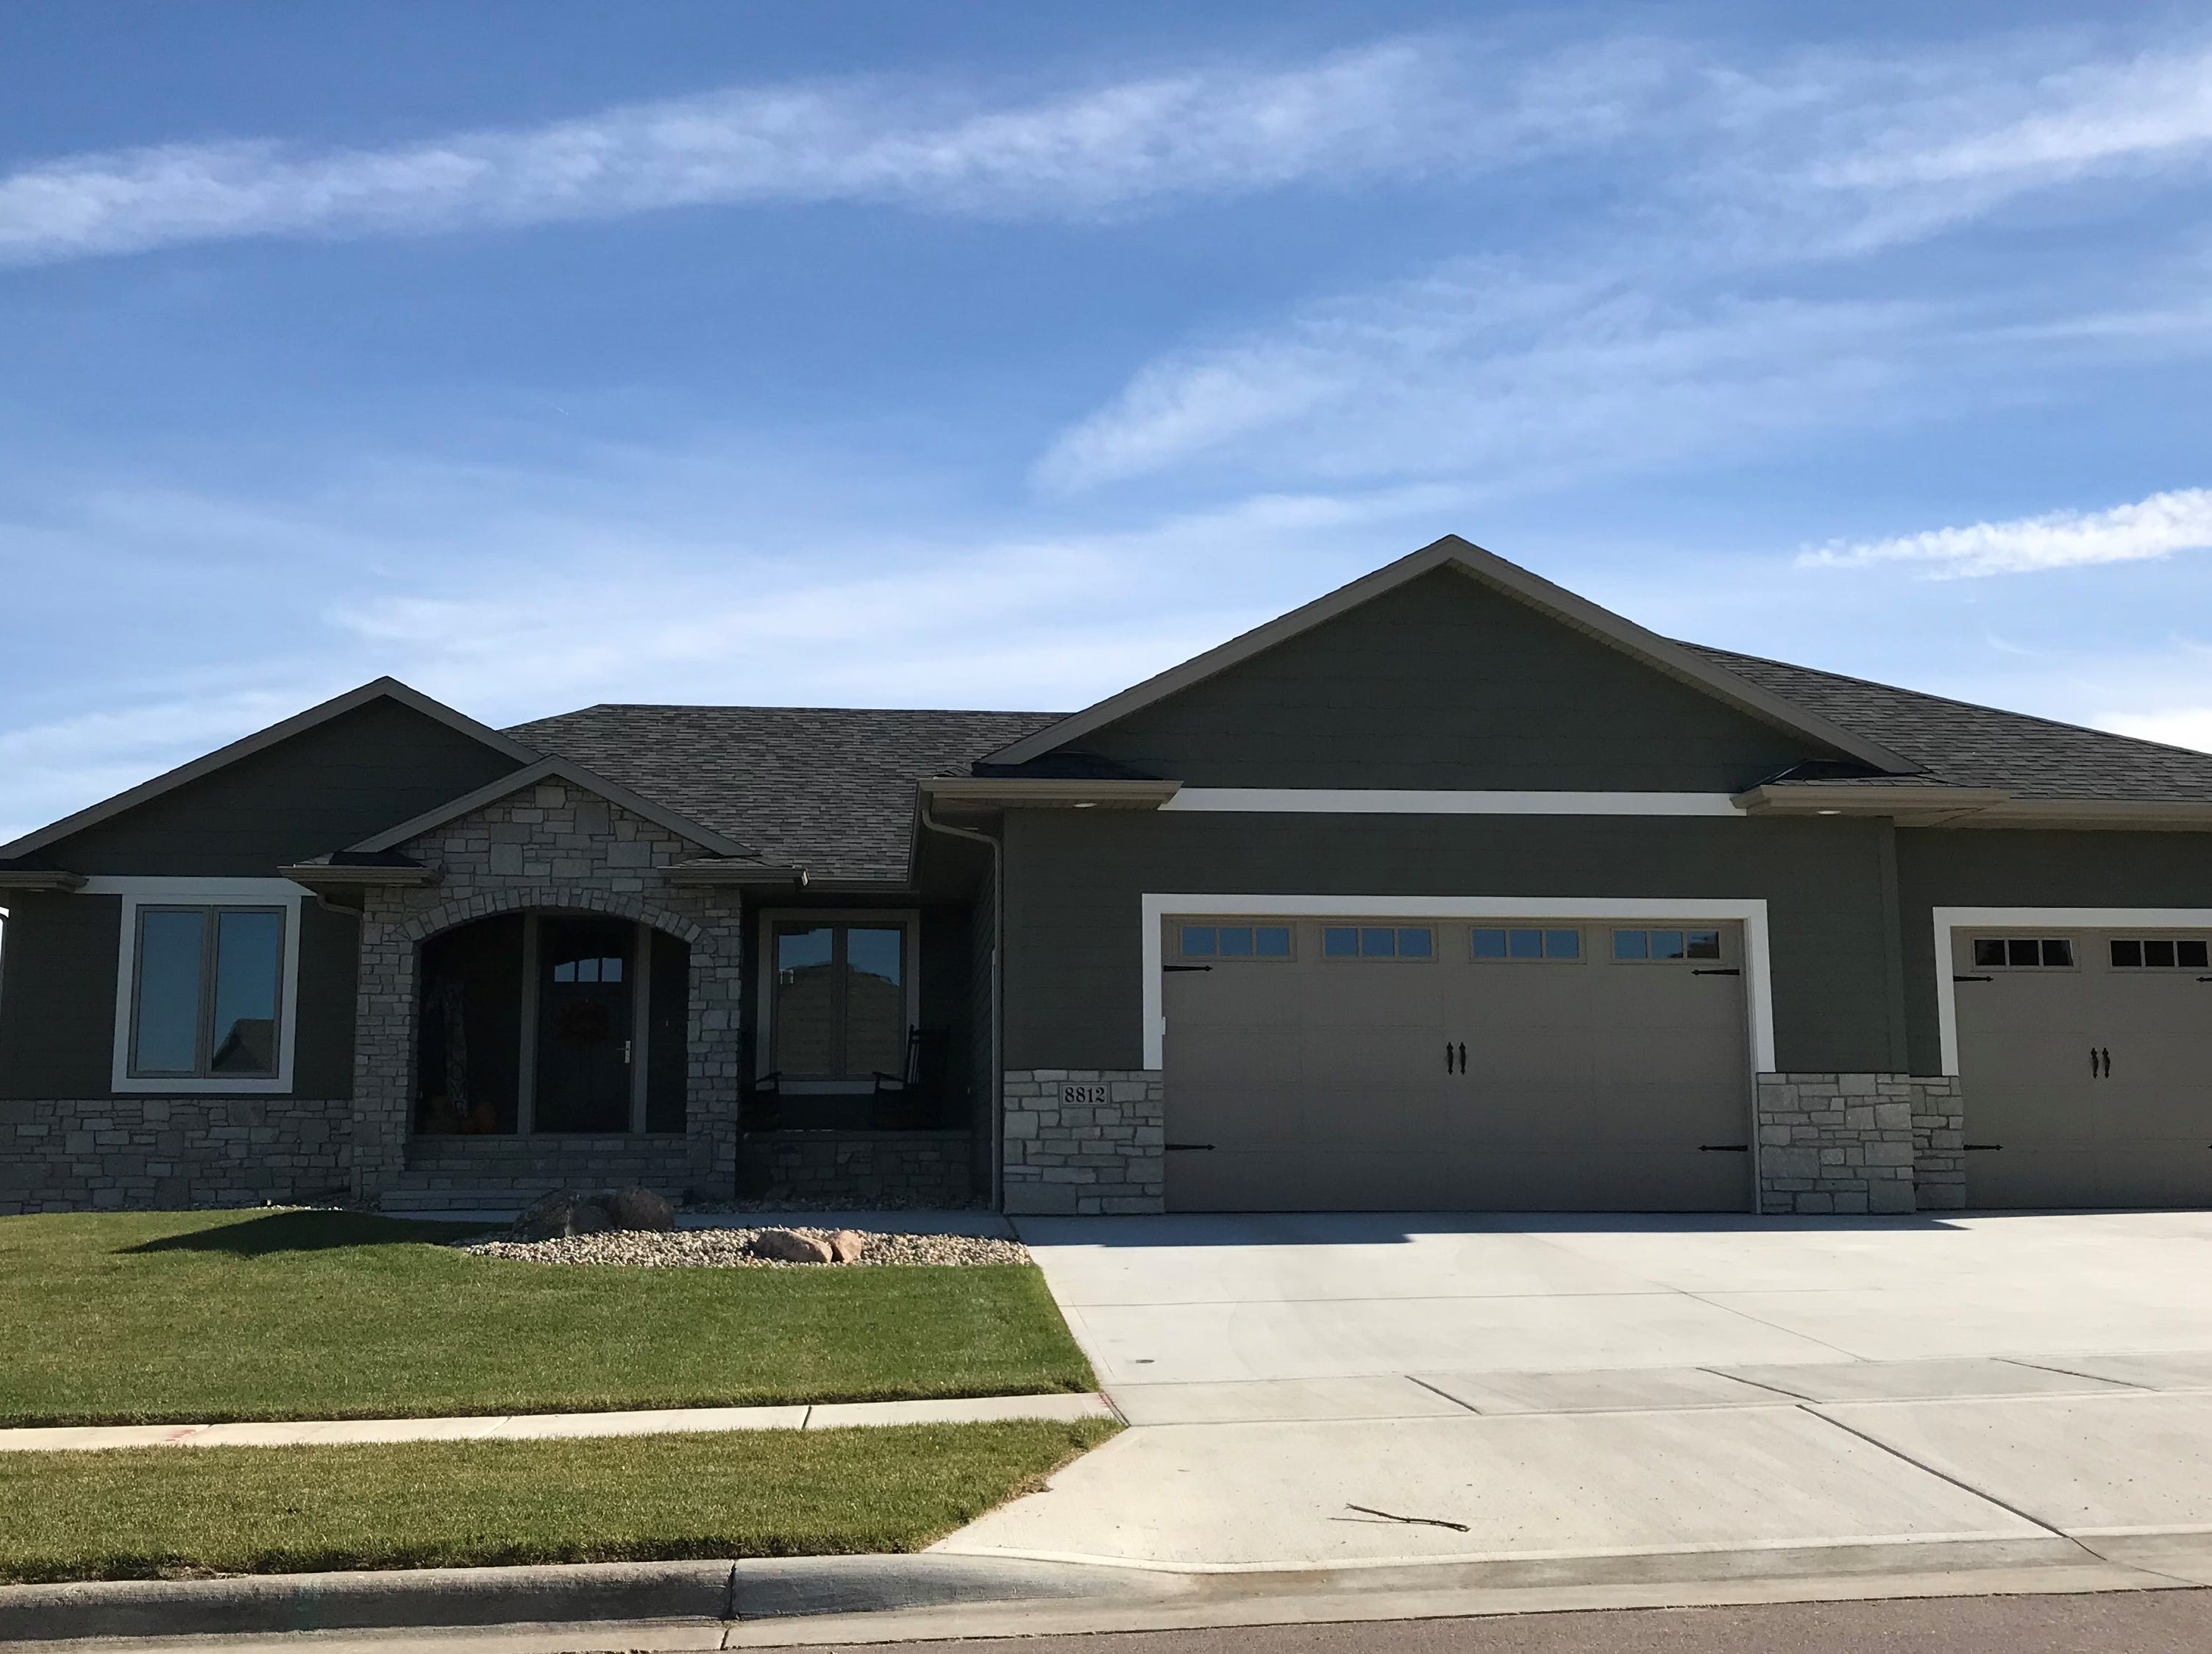 This westside Sioux Falls home next to Cherry Lake, at 8812 W. Lakeside Drive, was sold for $670,000, according to Minnehaha County public records, topping our home sales report for the week ending Aug. 10.